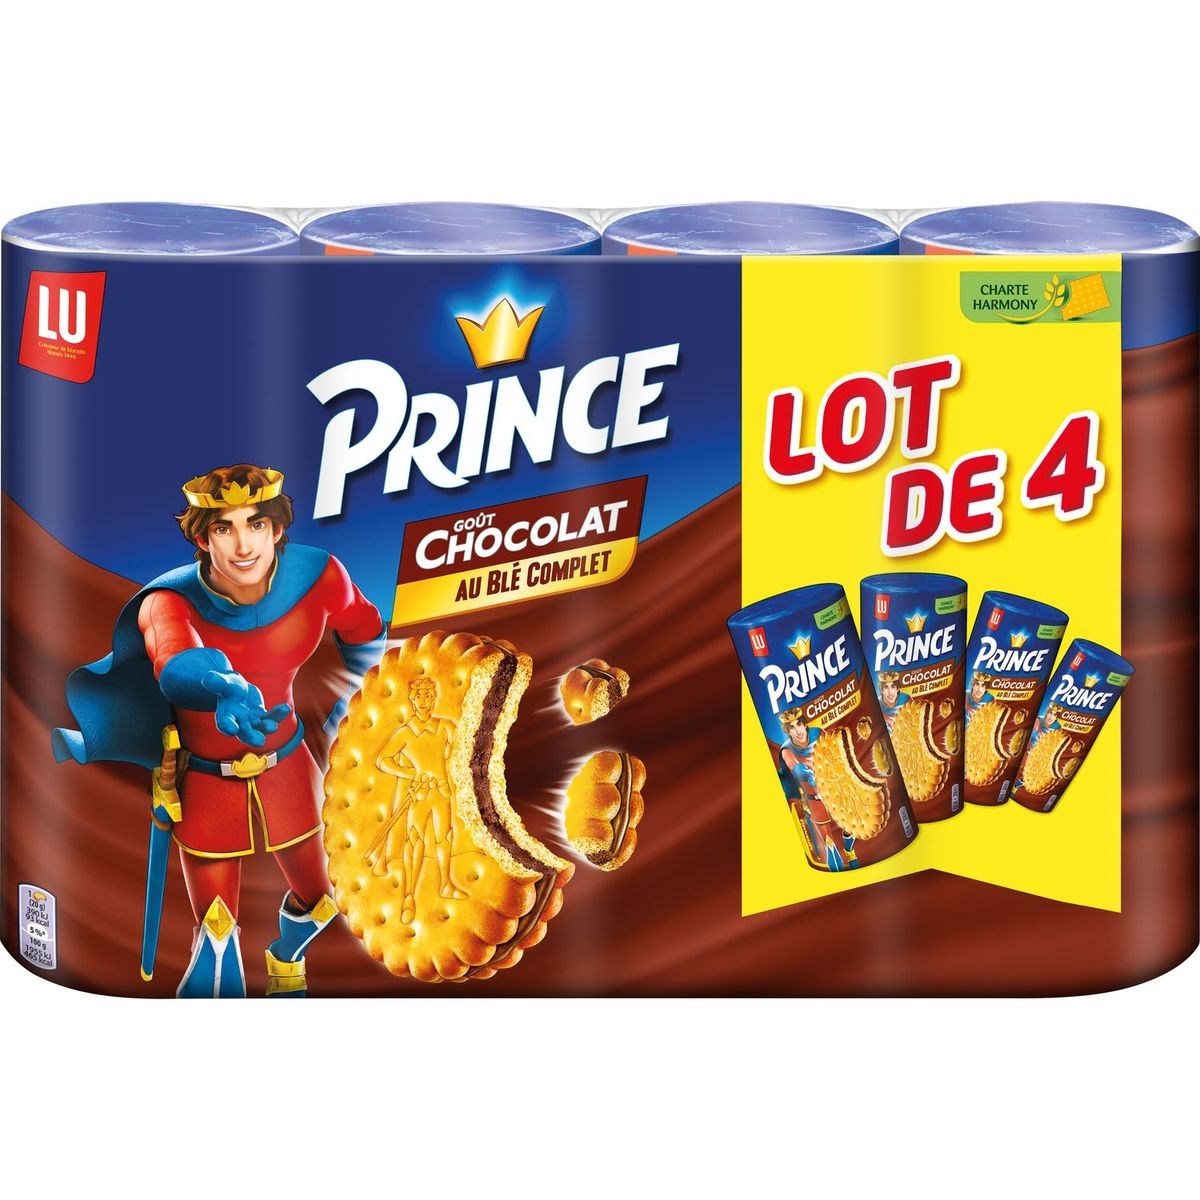 Promo biscuits Prince LU 2